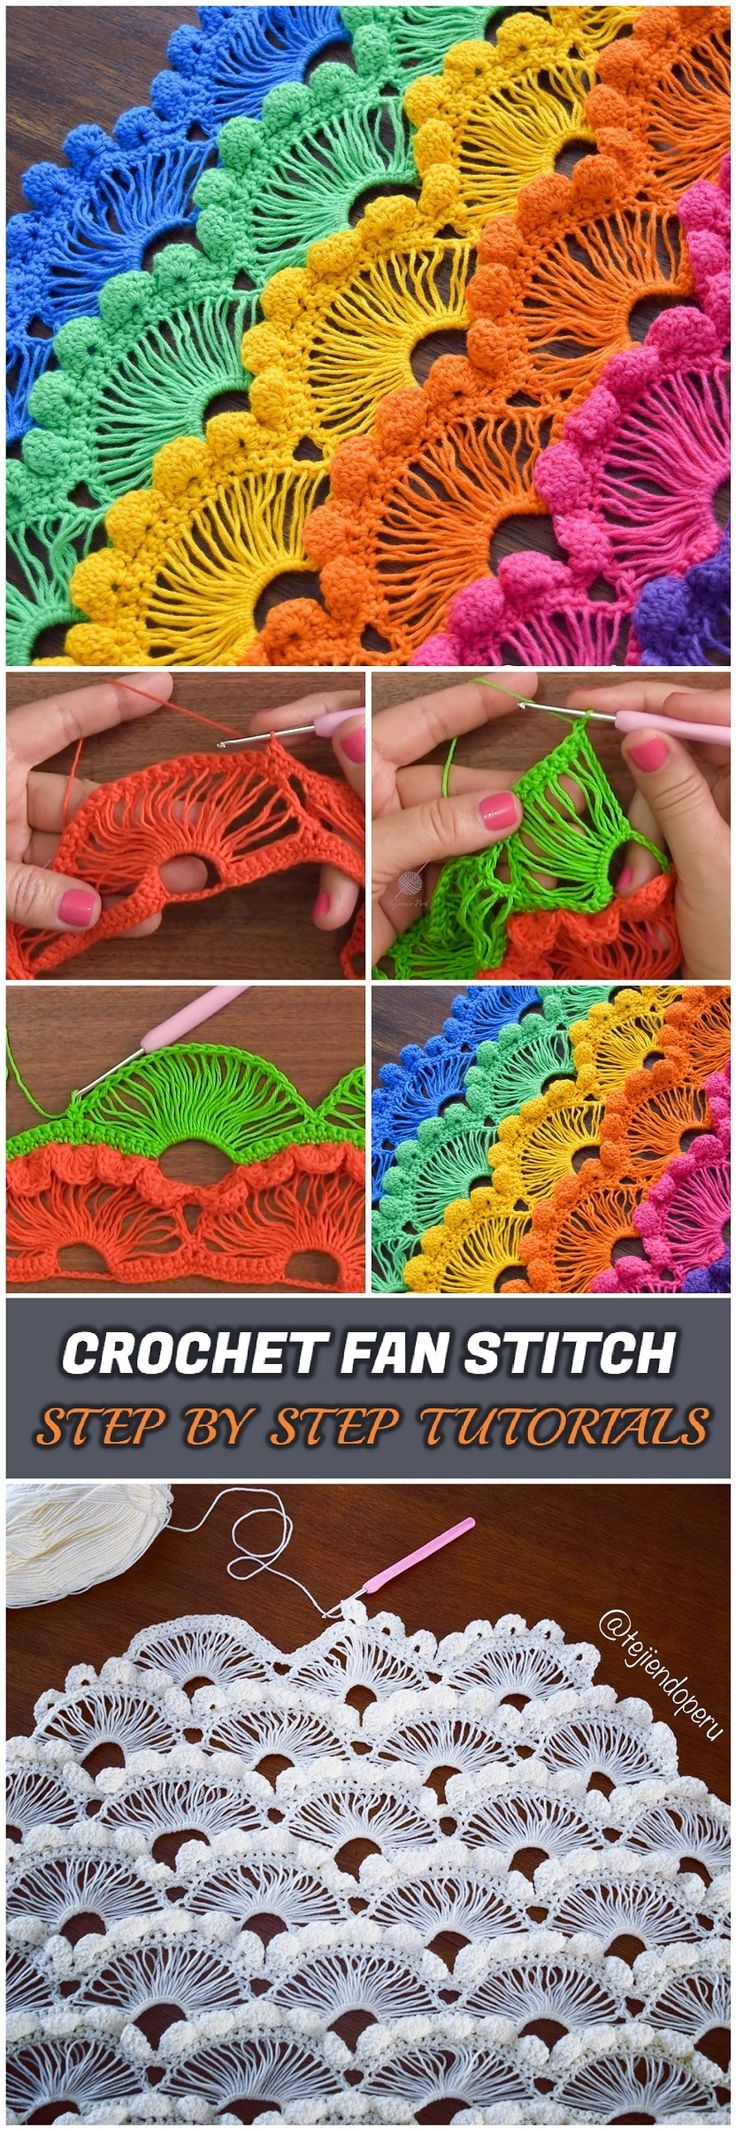 Crochet Fan Stitch - Step By Step Tutorials